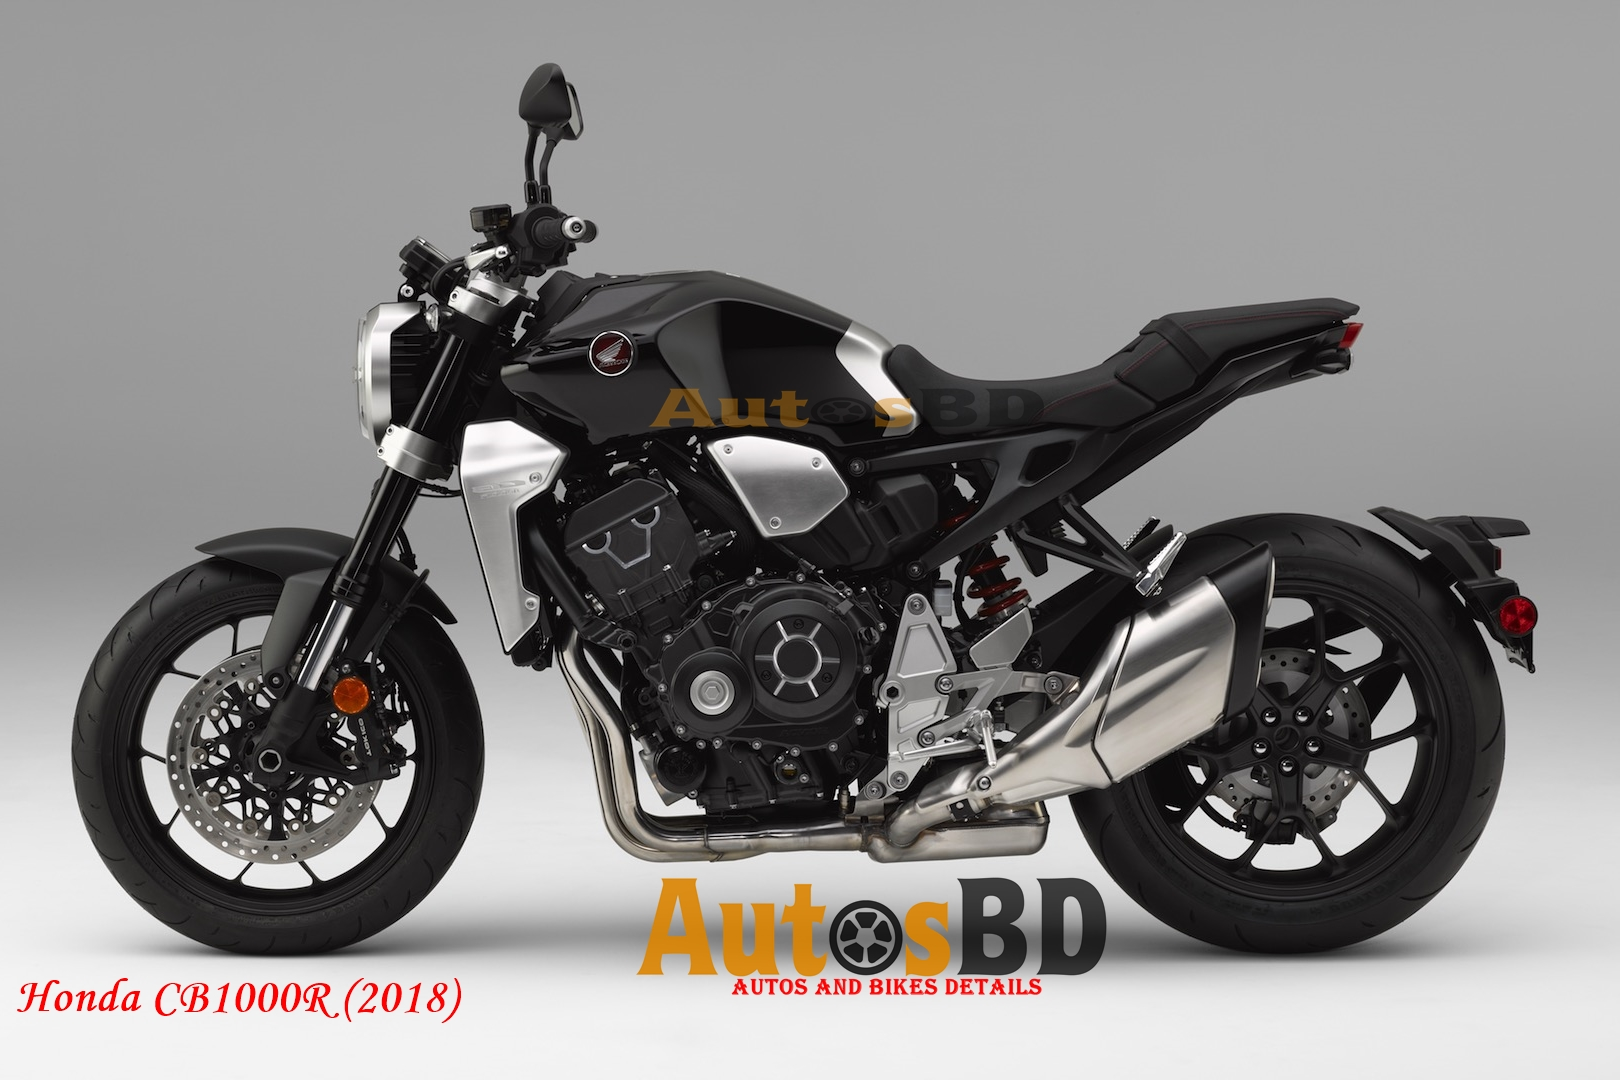 Honda CB1000R (2018) Specification